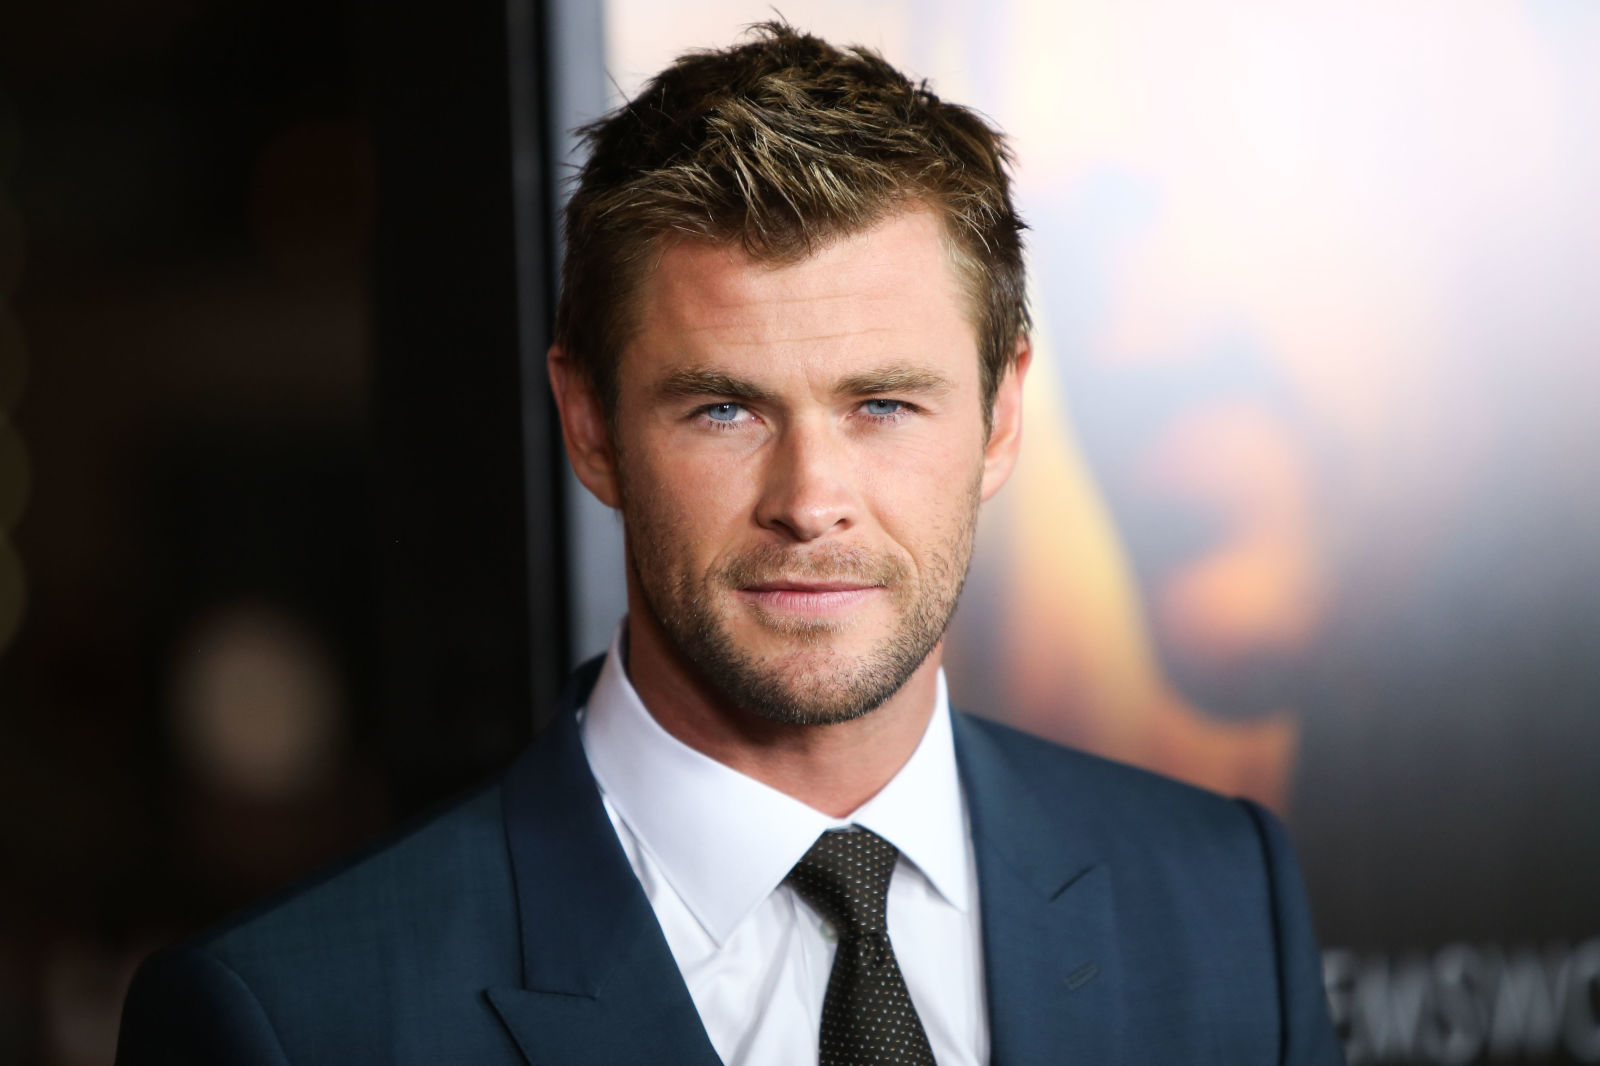 http://sugarscape.cdnds.net/15/02/1600x1066/nrm_1420812283-chris-hemsworth-fit-premiere5.jpg